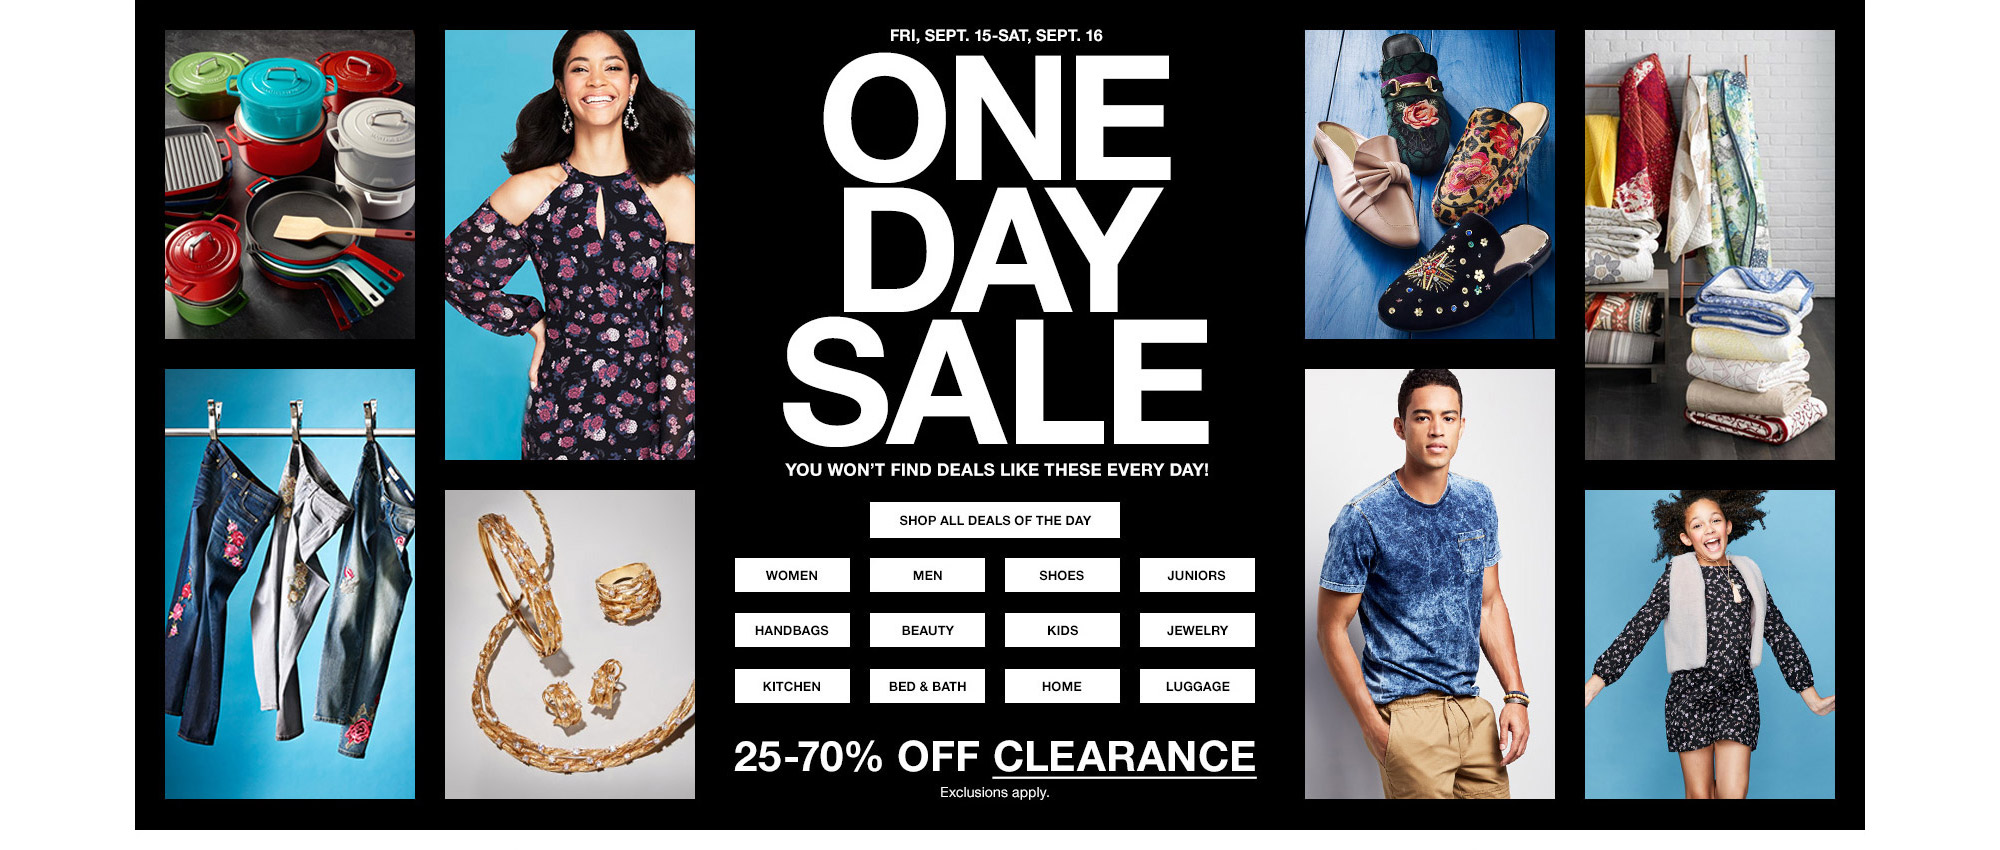 friday, september 15th to saturday, september 16th one day sale. you won't find deals like these every day! 25 percent to 70 percent clearance. exclusions apply.